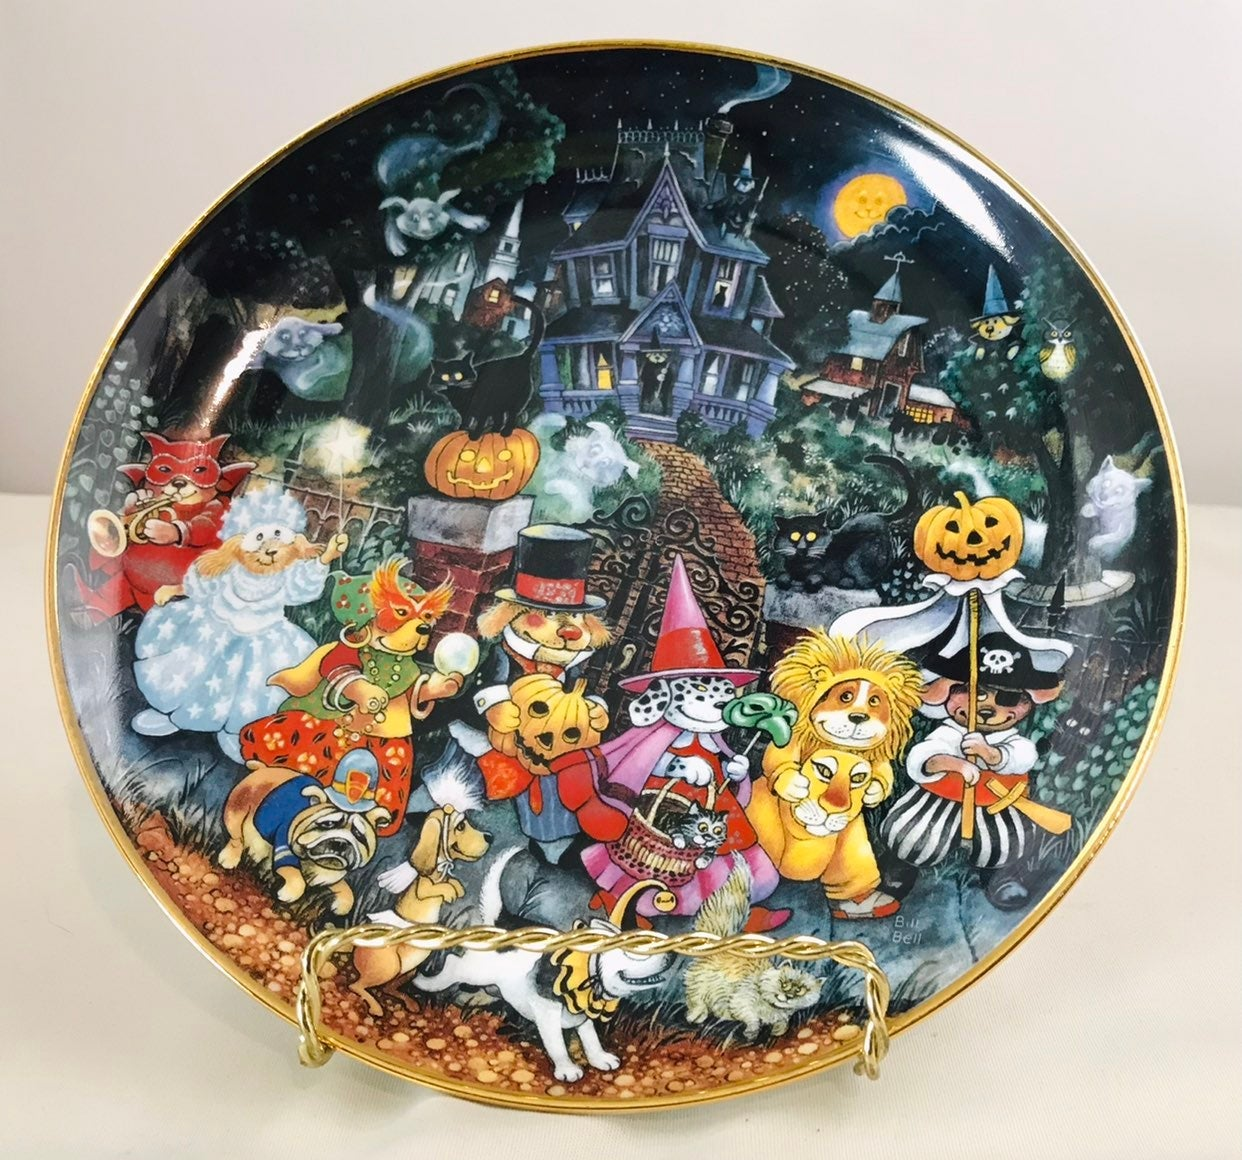 Franklin Mint Ltd. Howl-O-Ween Plate!